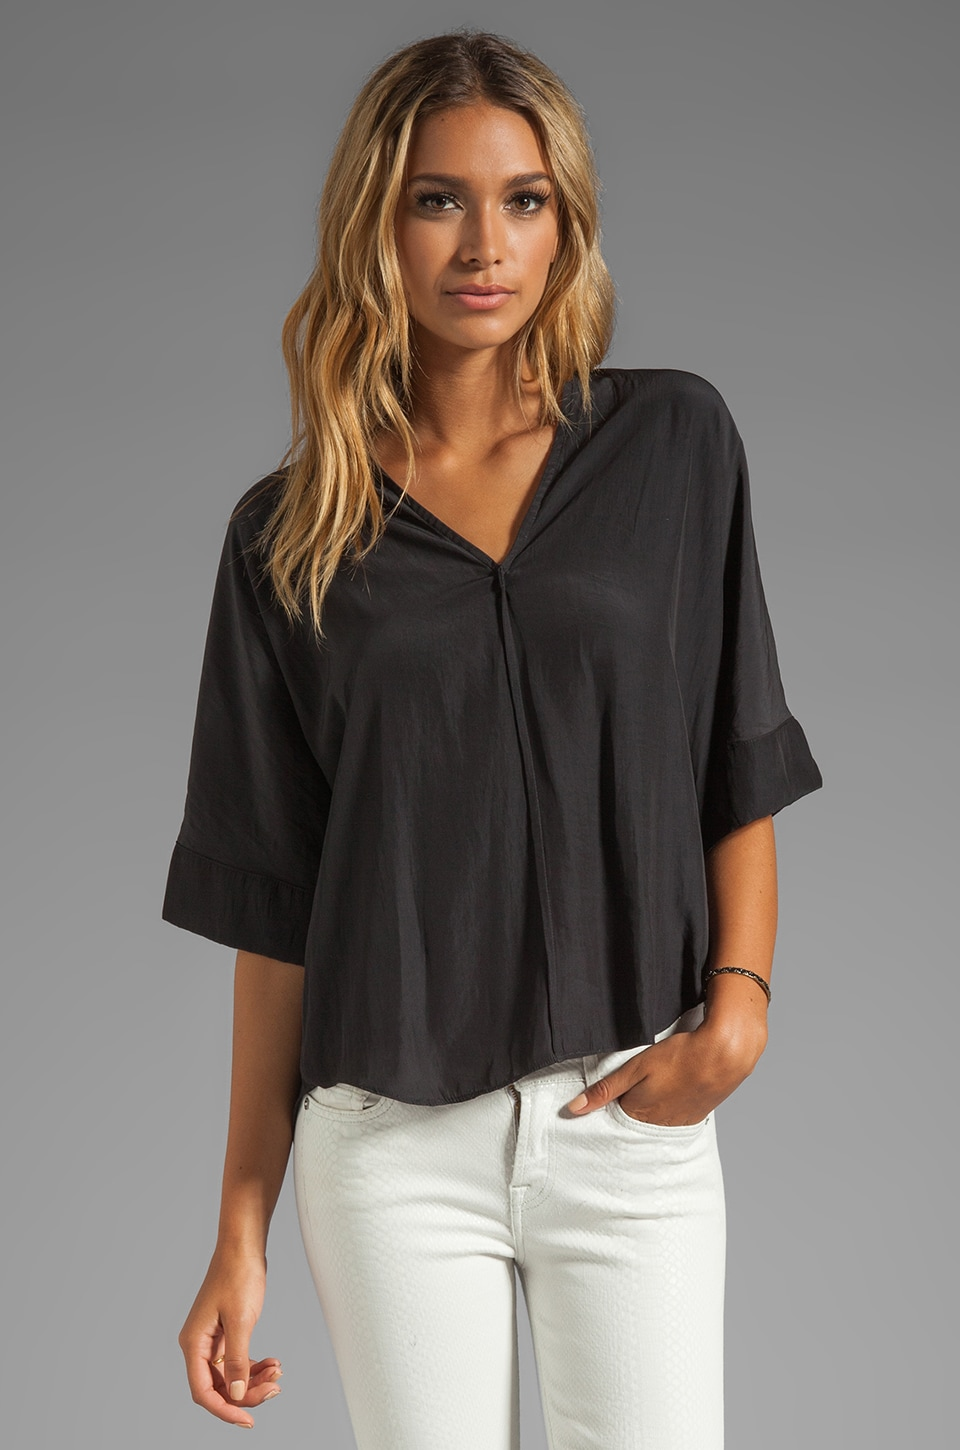 Feel the Piece The Rolland Top in Black